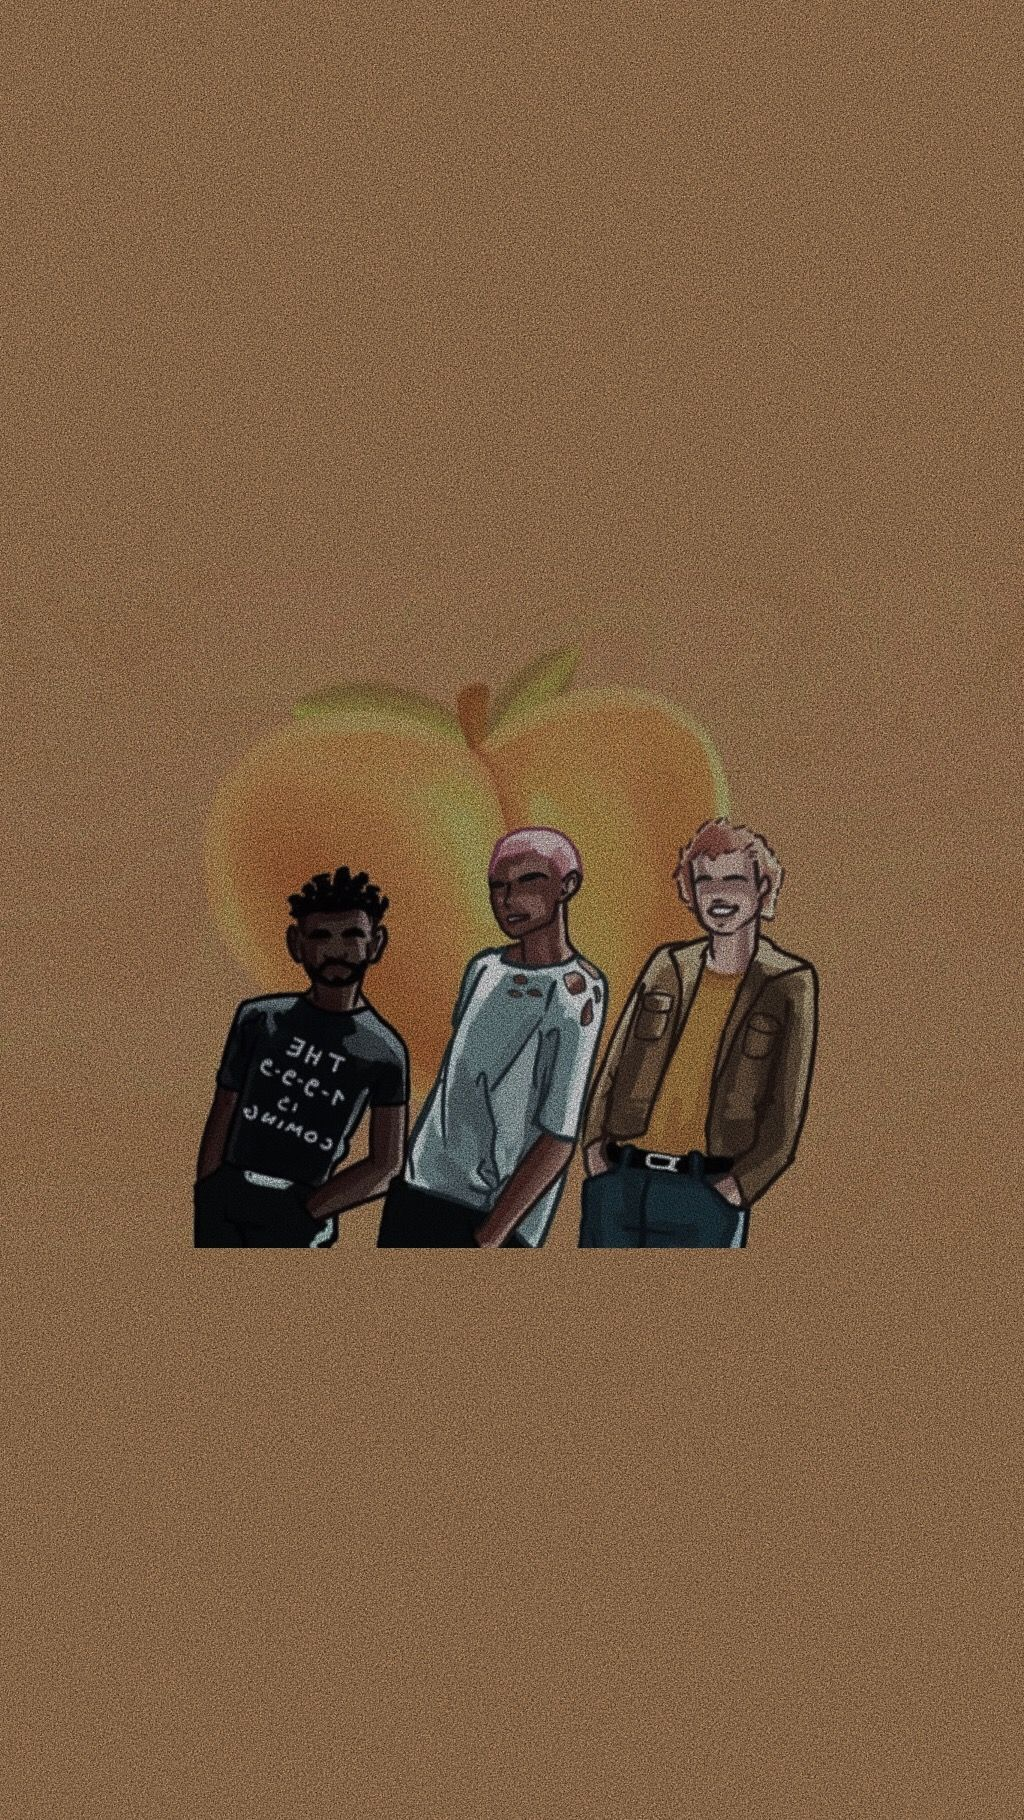 1024x1820 peach kevin abstract lockscreen in 2019 | Kevin abstract ...